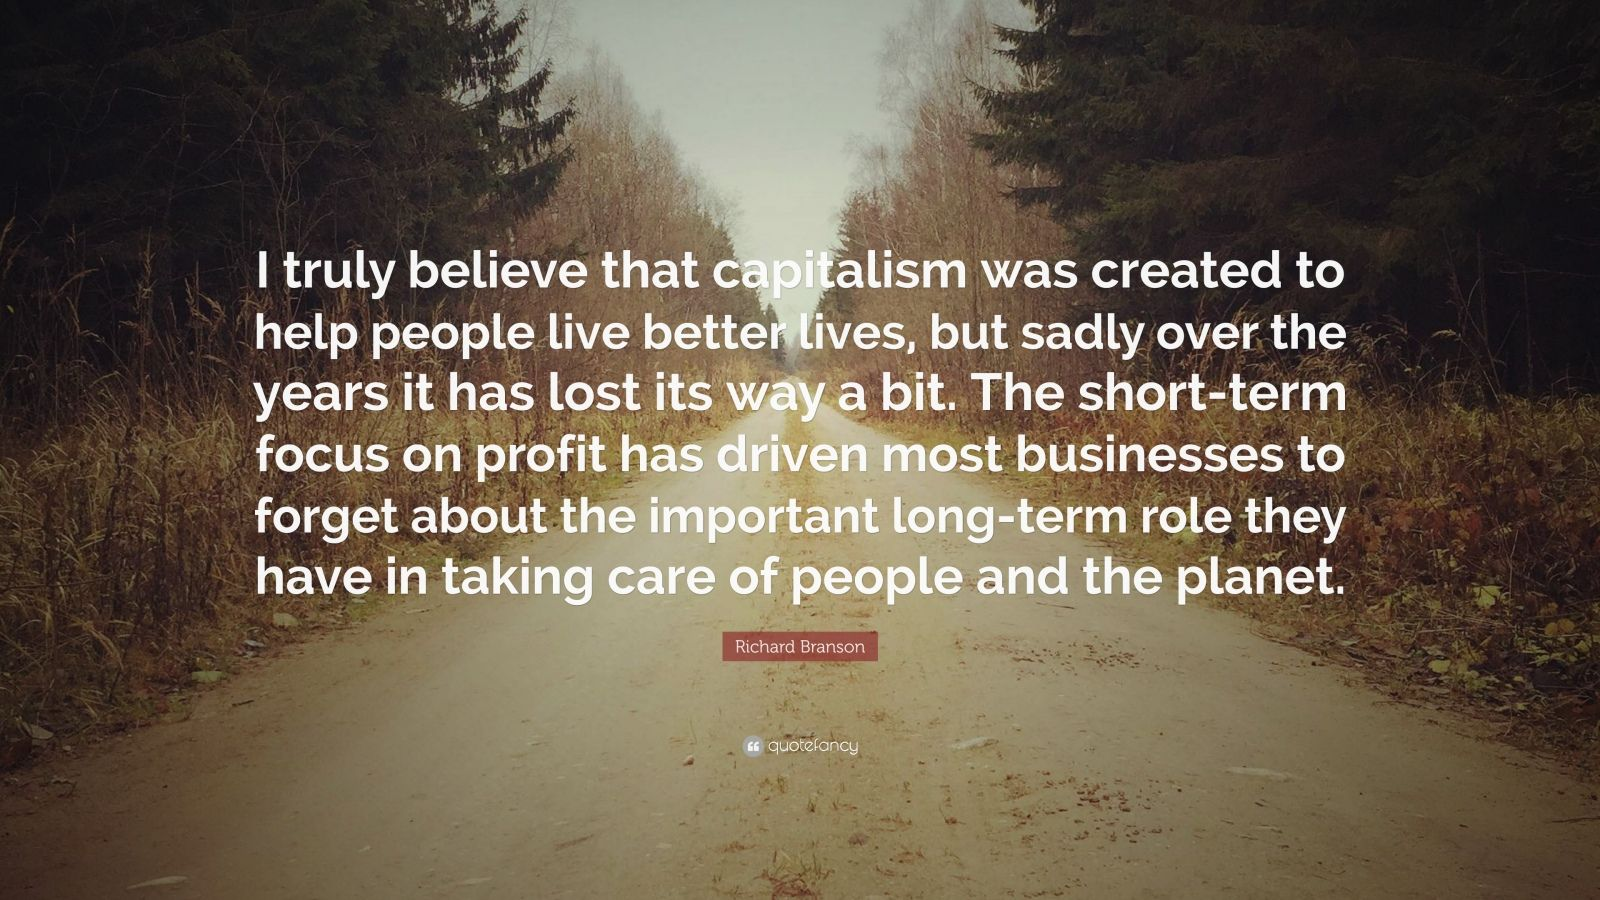 """Richard Branson Quote: """"I truly believe that capitalism was created to help people live better lives, but sadly over the years it has lost its way a bit. The short-term focus on profit has driven most businesses to forget about the important long-term role they have in taking care of people and the planet."""""""